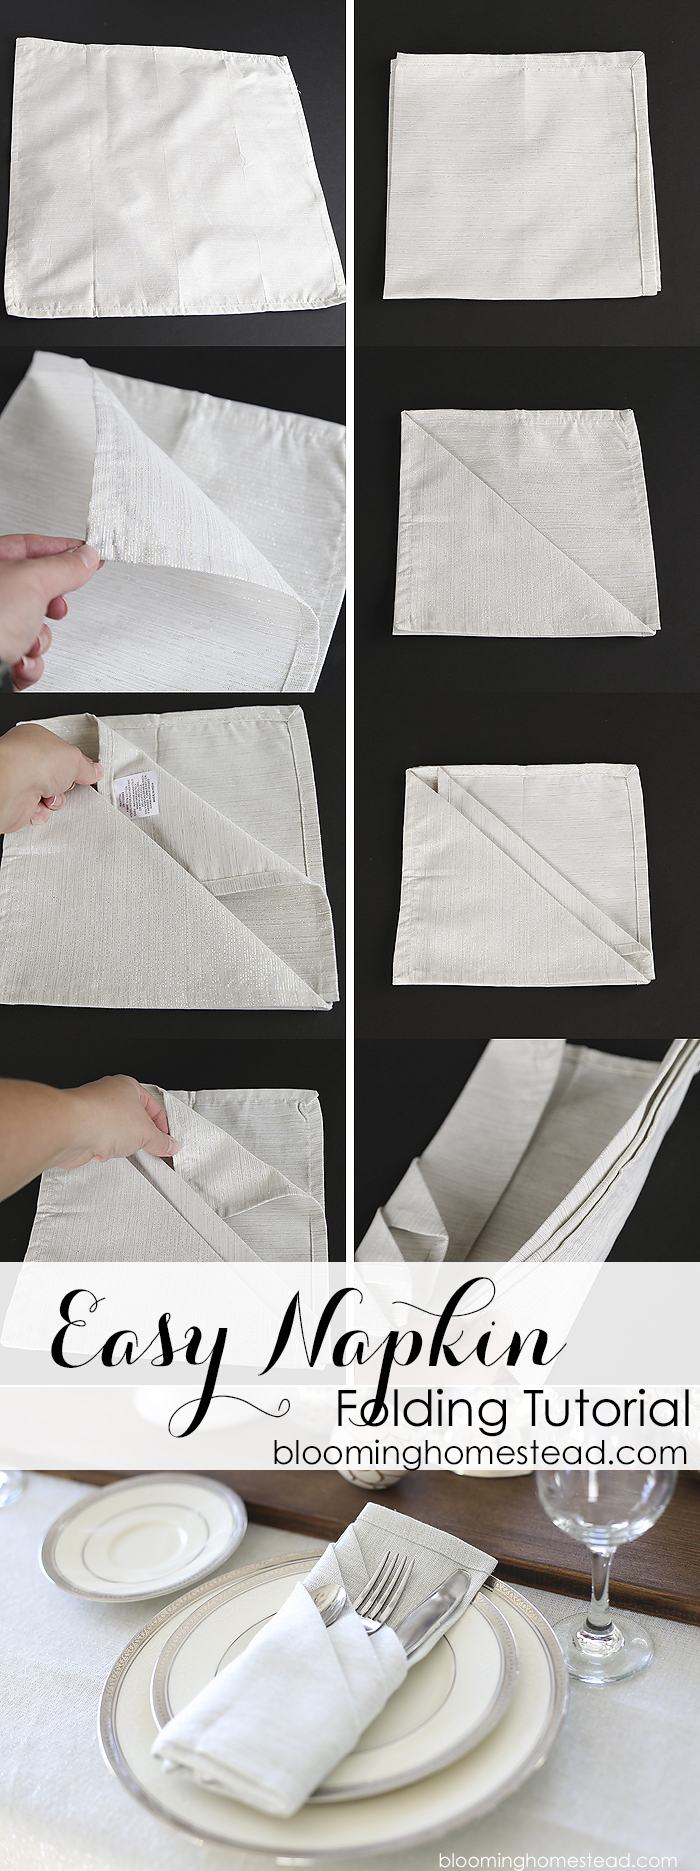 The simple and elegant way to fold cloth napkins couldn't be easier! Step by step tutorial to fold napkins easily for any event.